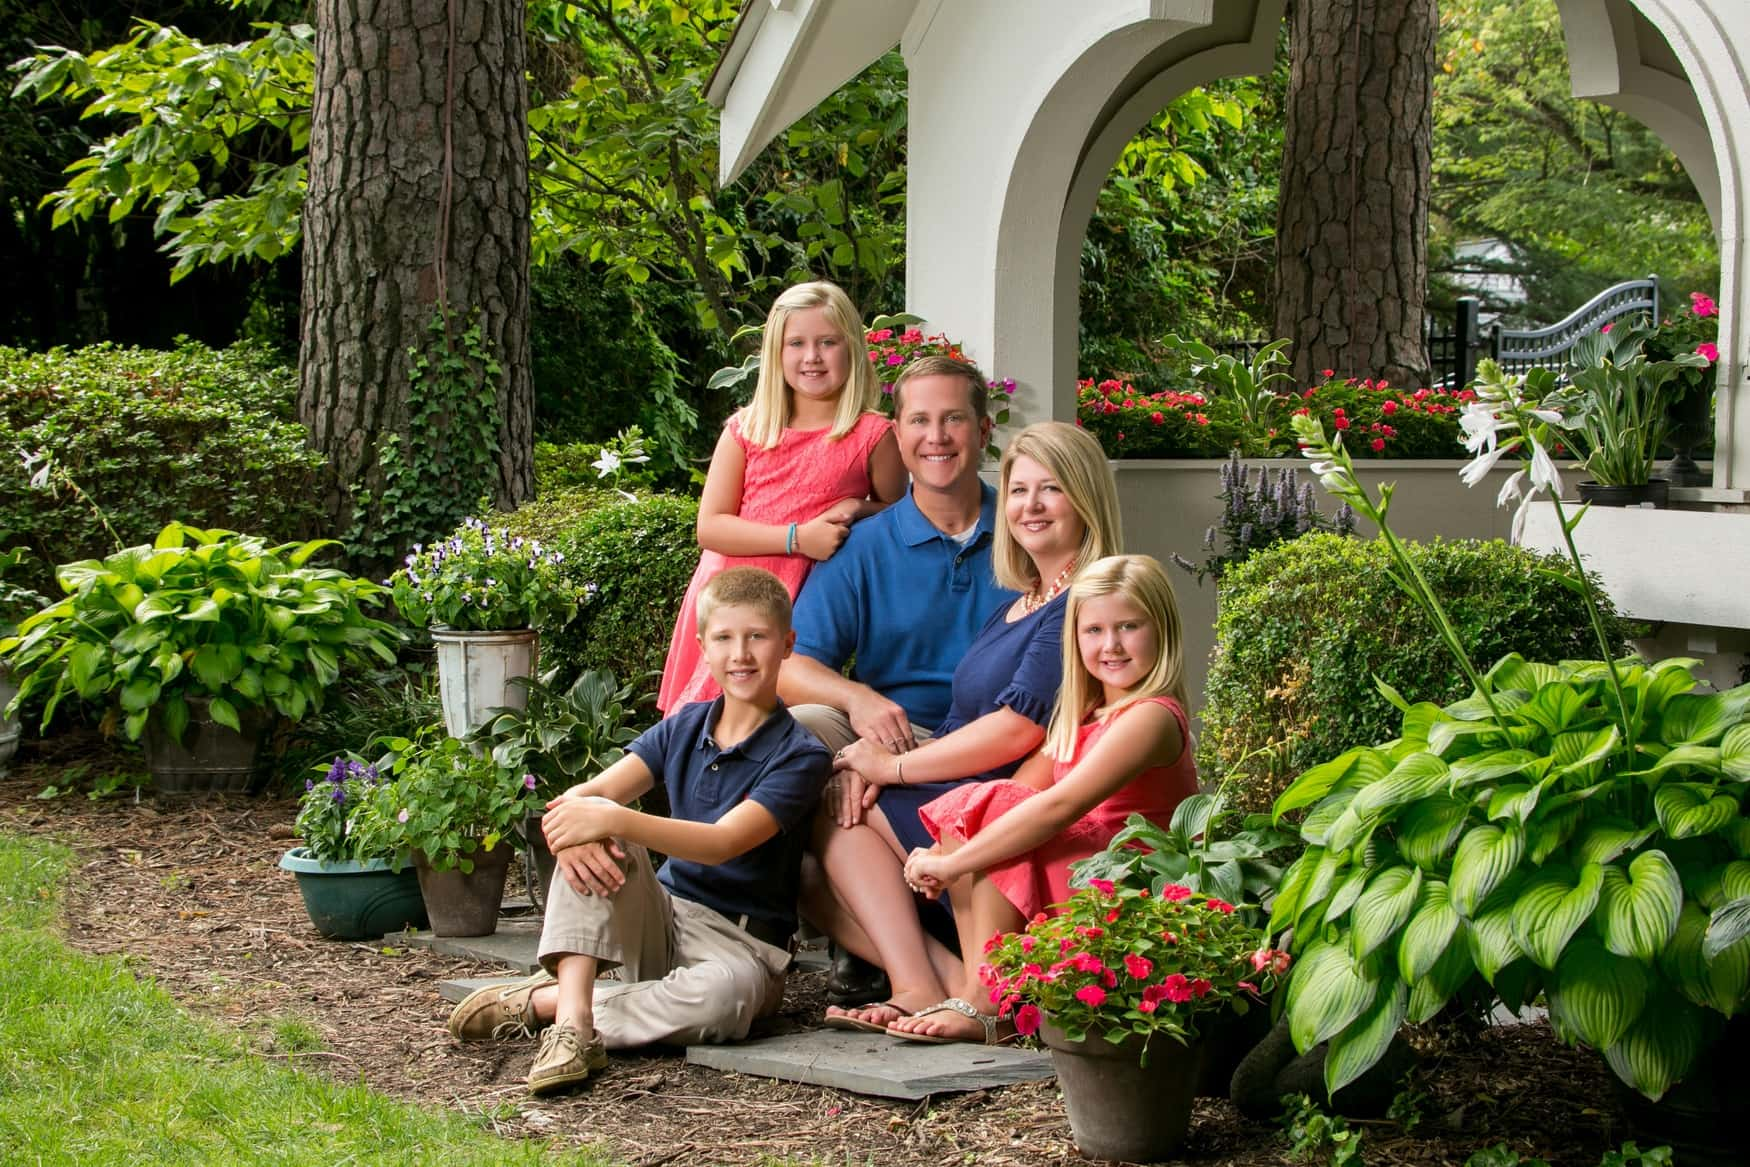 Introducing Our New Portrait Video Featuring the Dooley Family